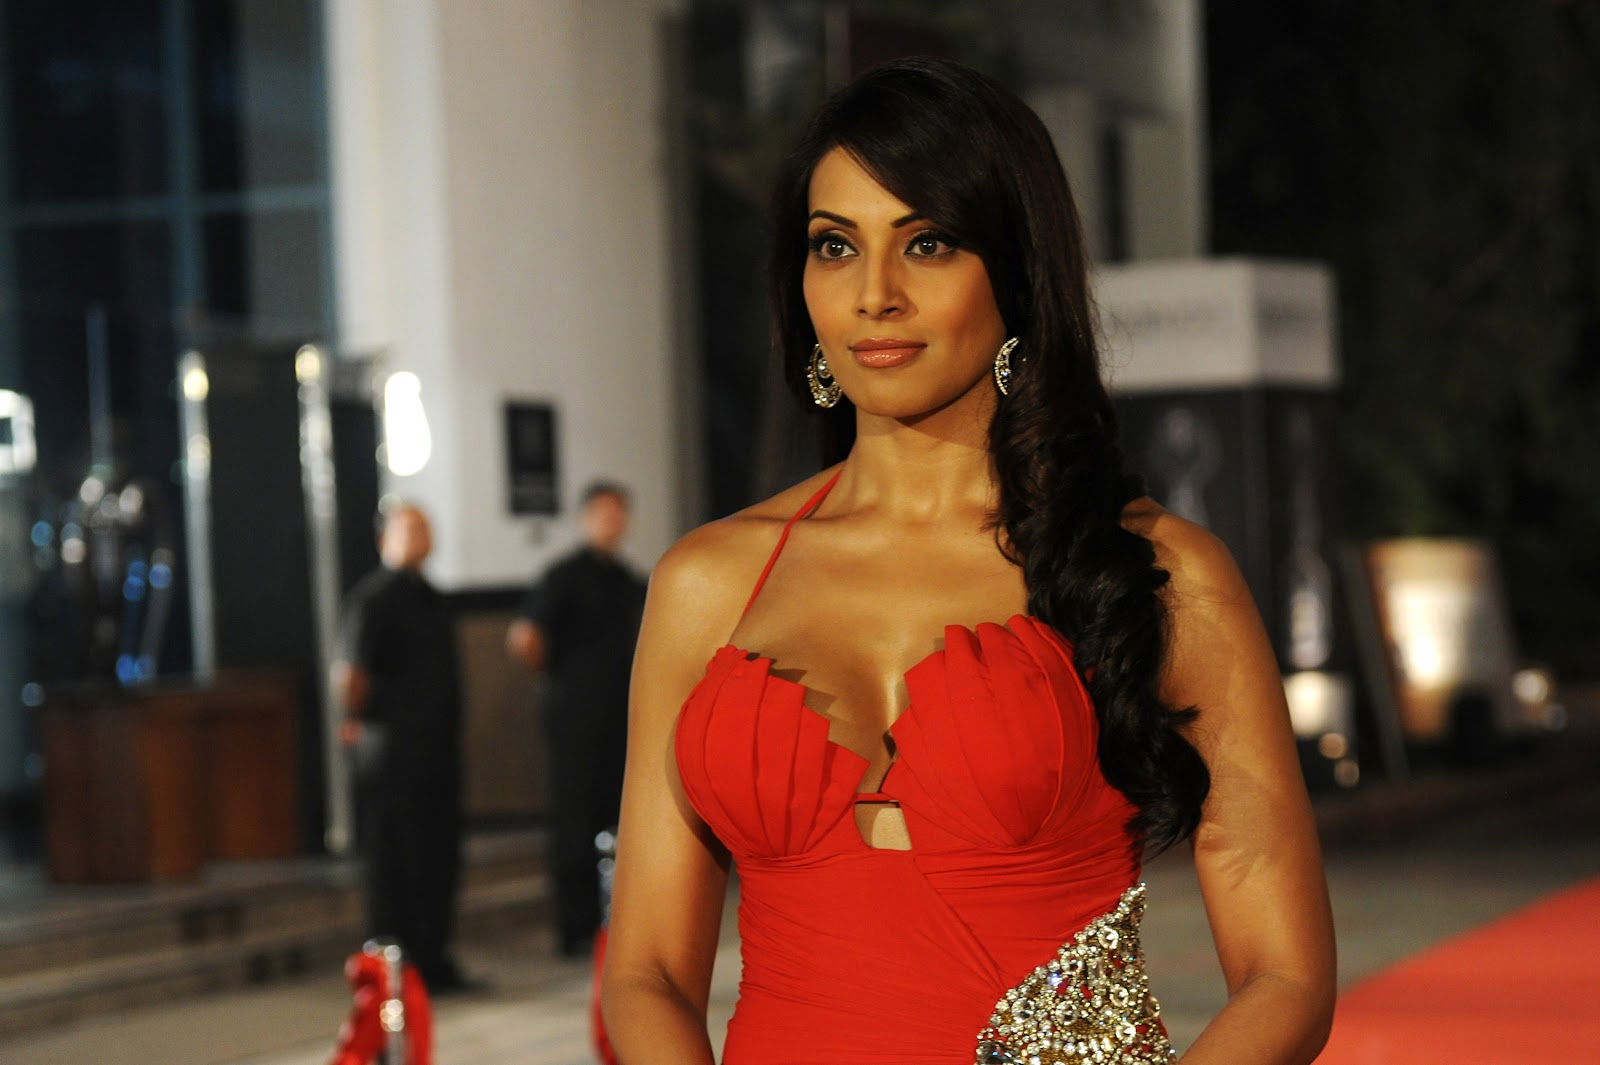 stunning bipasha basu cute look hd background free wallpaper desktop mobile